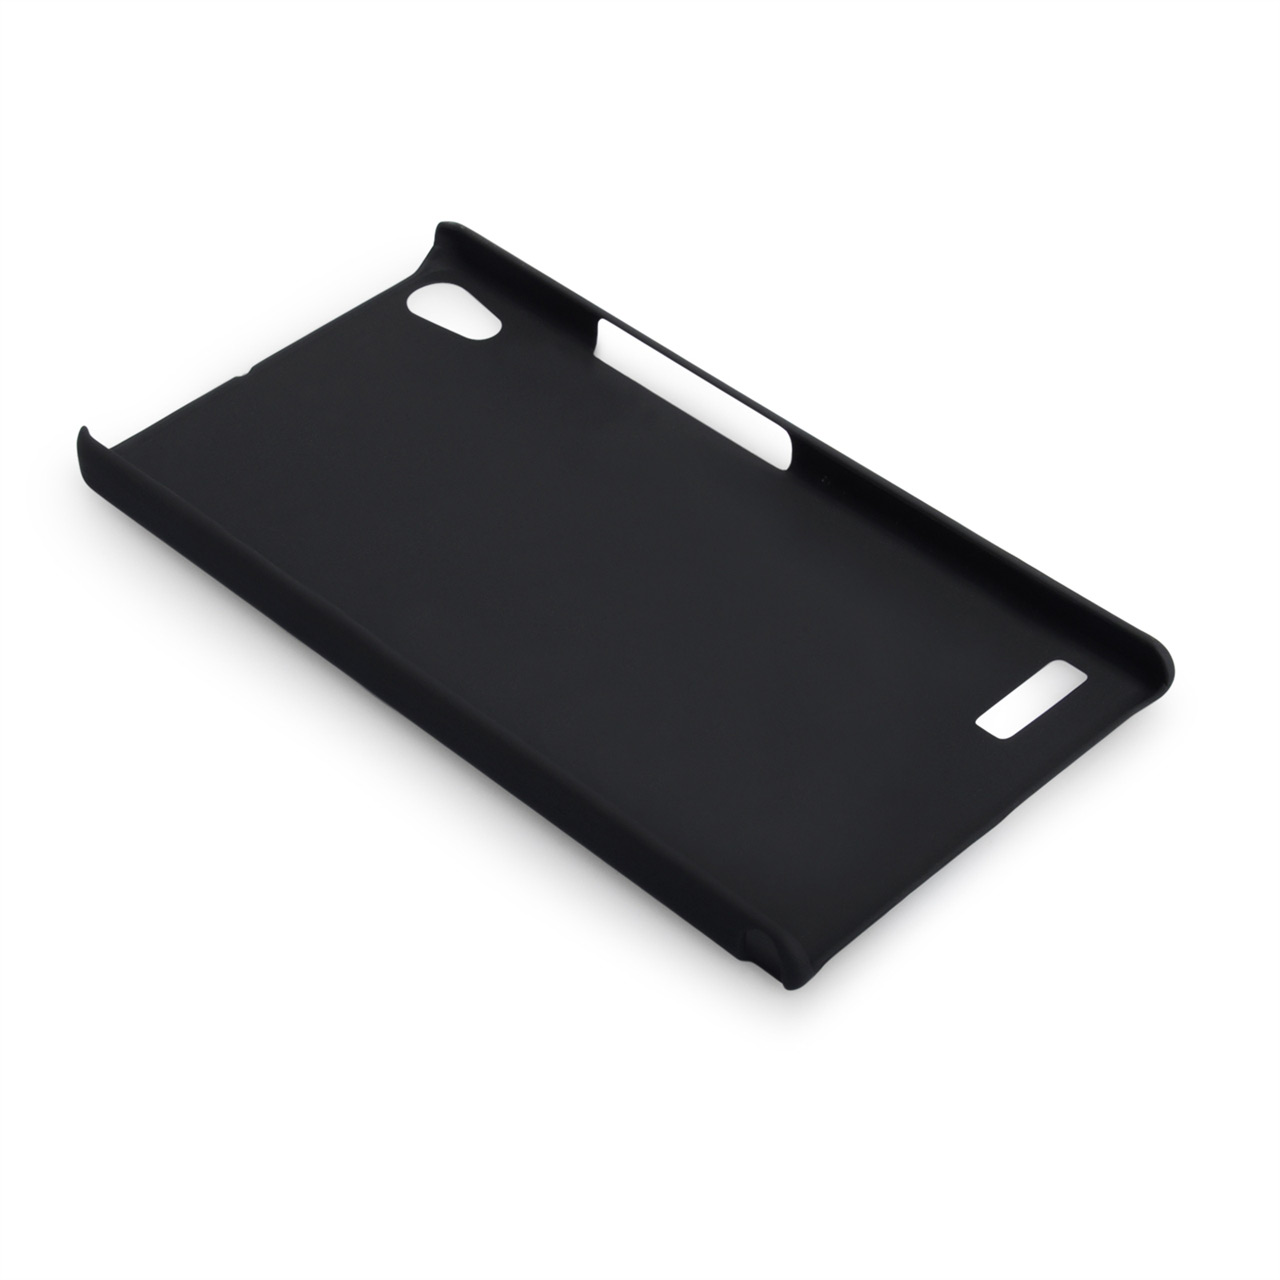 YouSave Accessories Huawei Ascend P6 Black Hybrid Hard Case